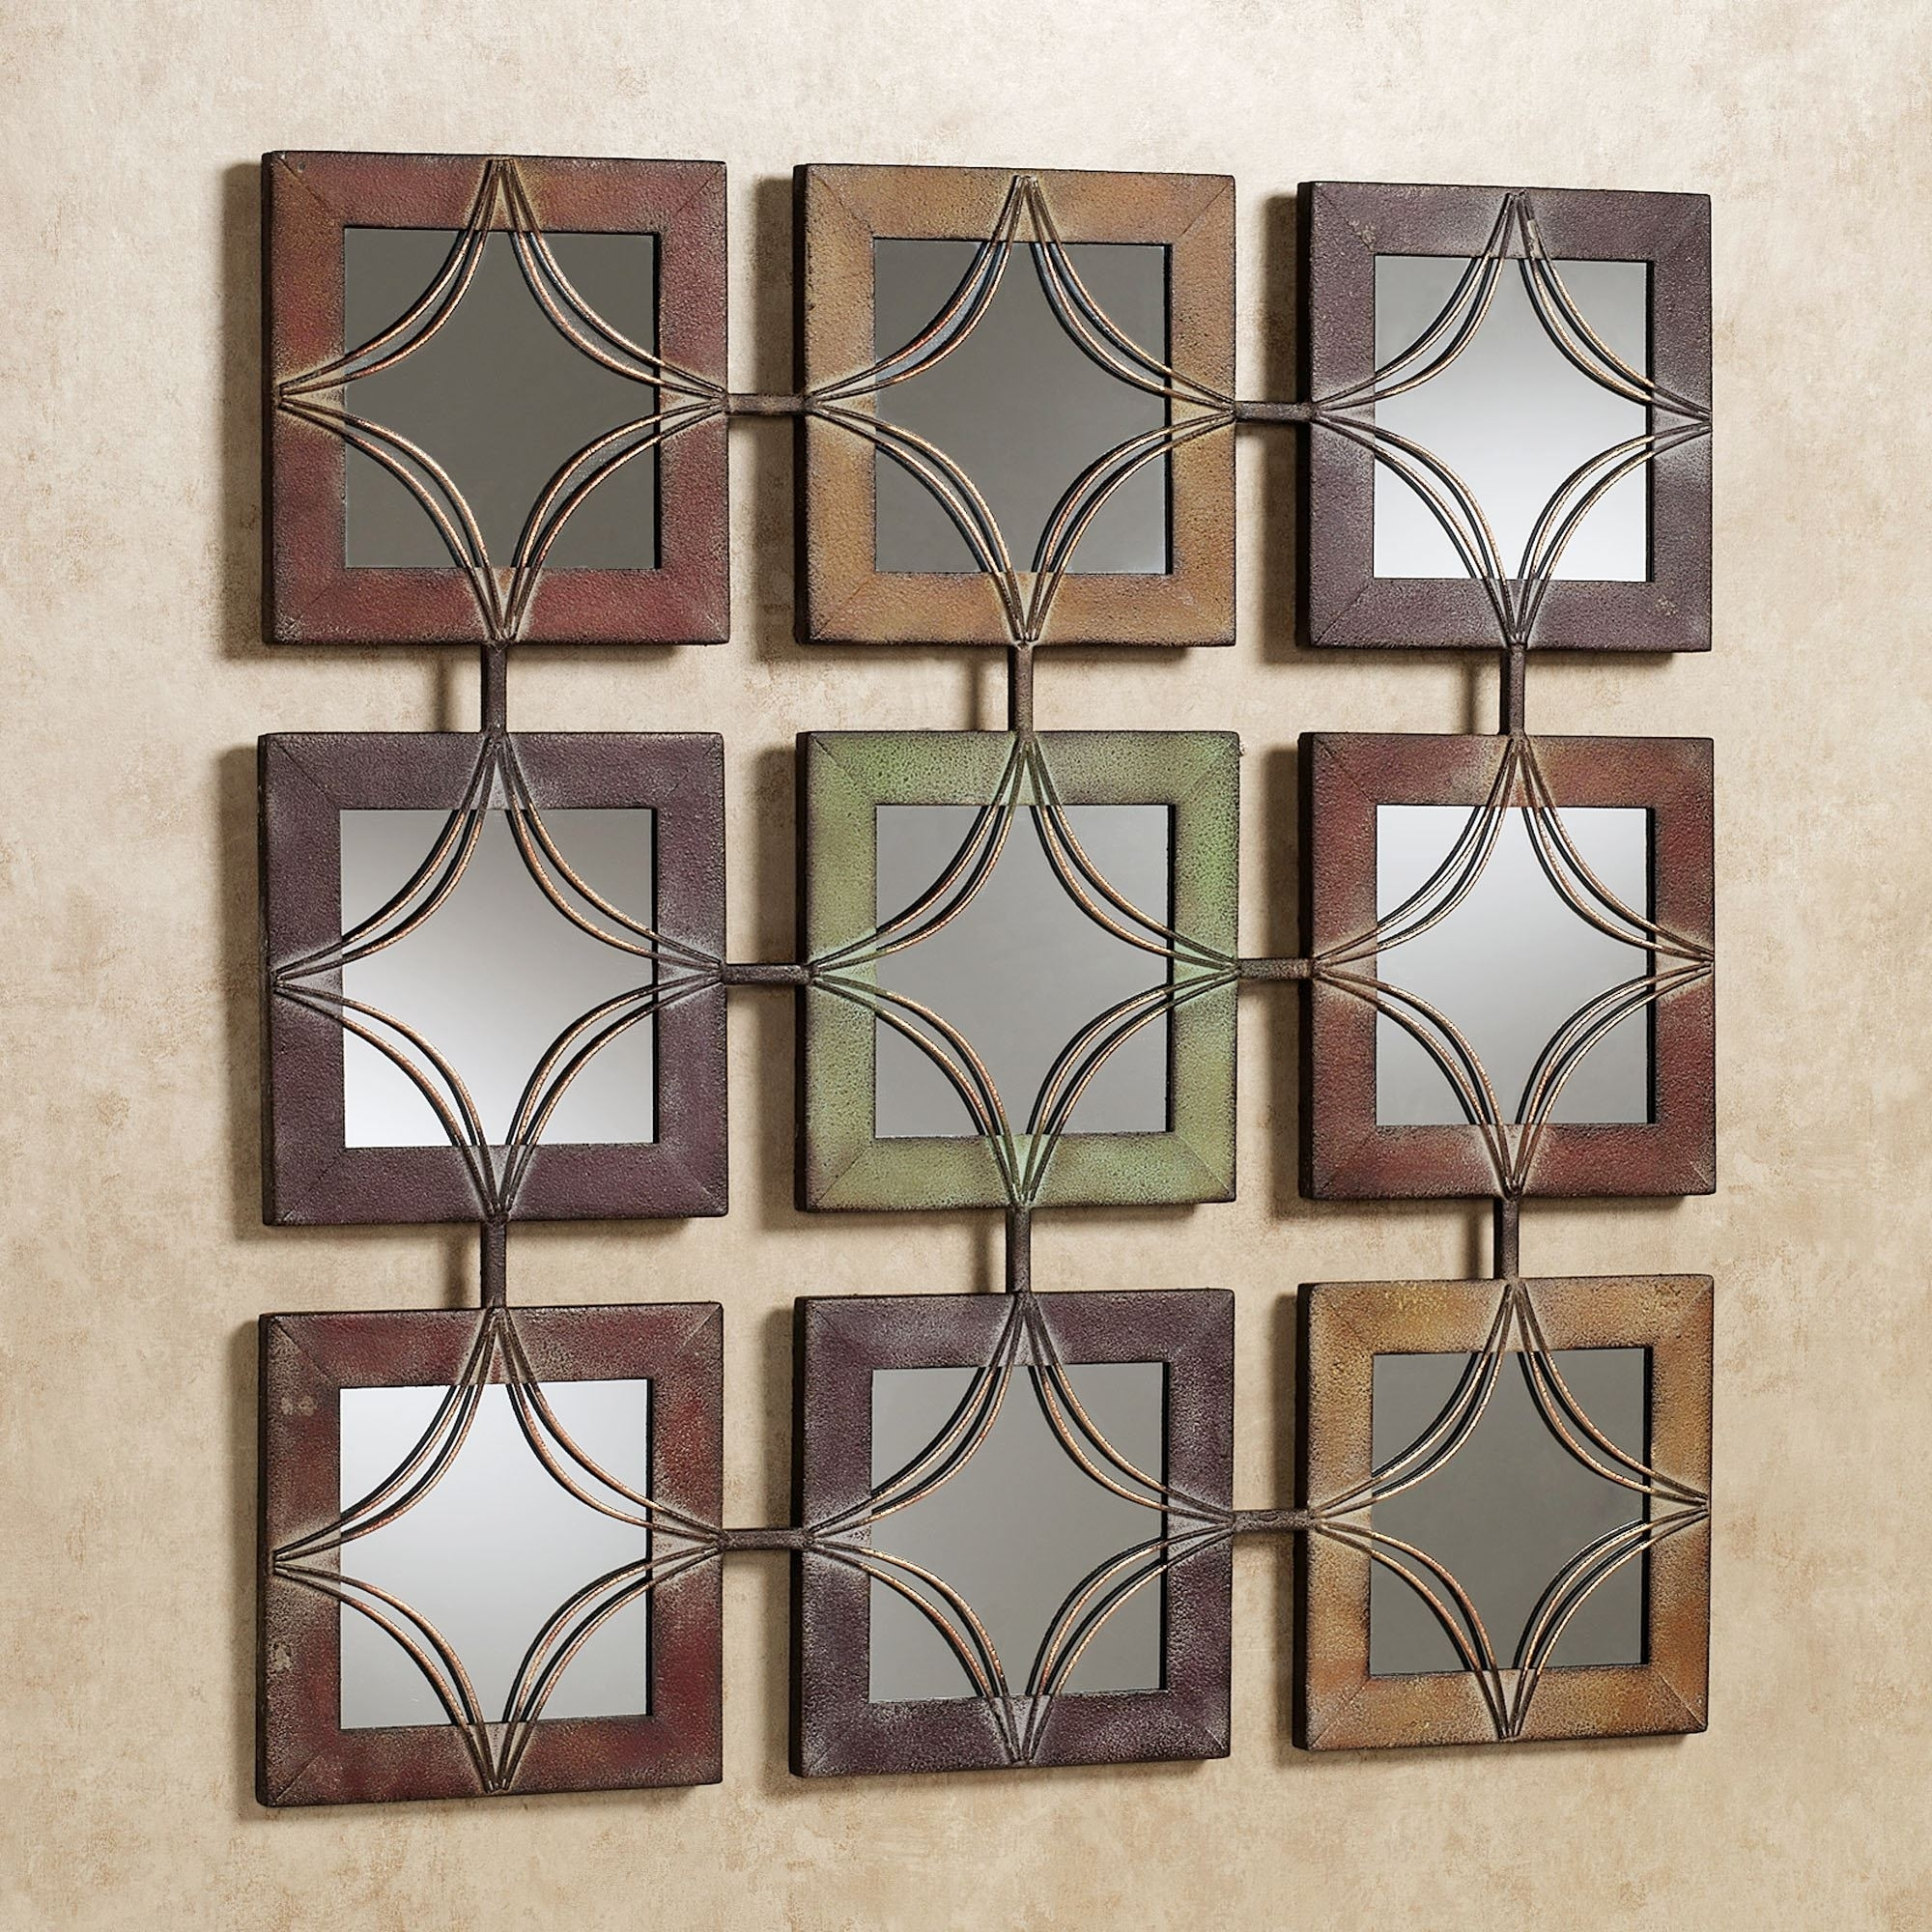 Domini Mirrored Metal Wall Art With Regard To Newest Art Wall Decor (Gallery 4 of 20)